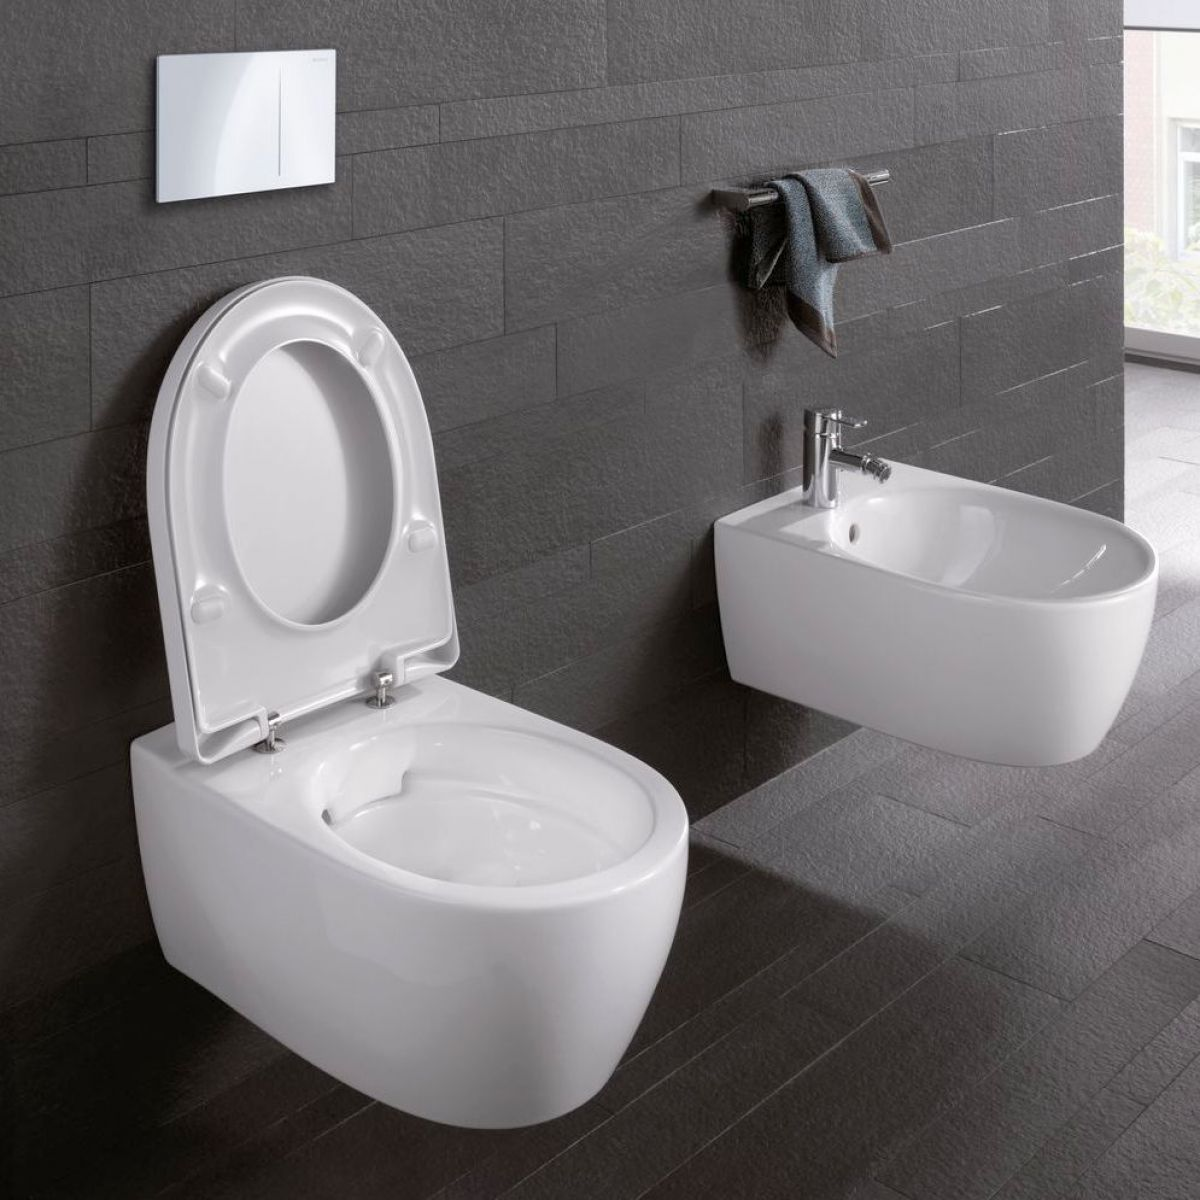 geberit icon rimfree wall hung toilet uk bathrooms. Black Bedroom Furniture Sets. Home Design Ideas